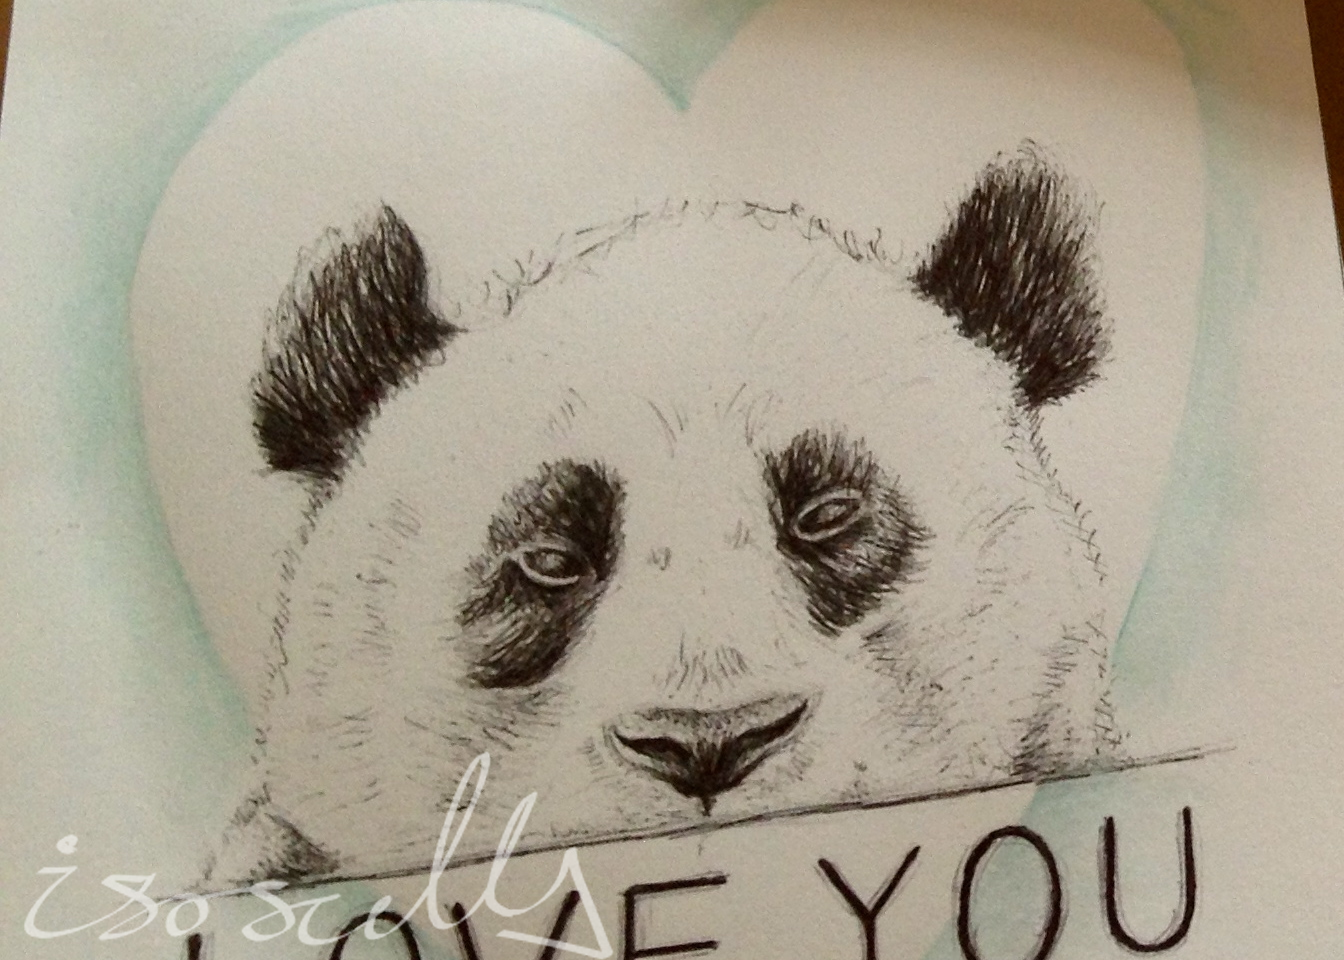 Panda biro sketch with watercolour painting